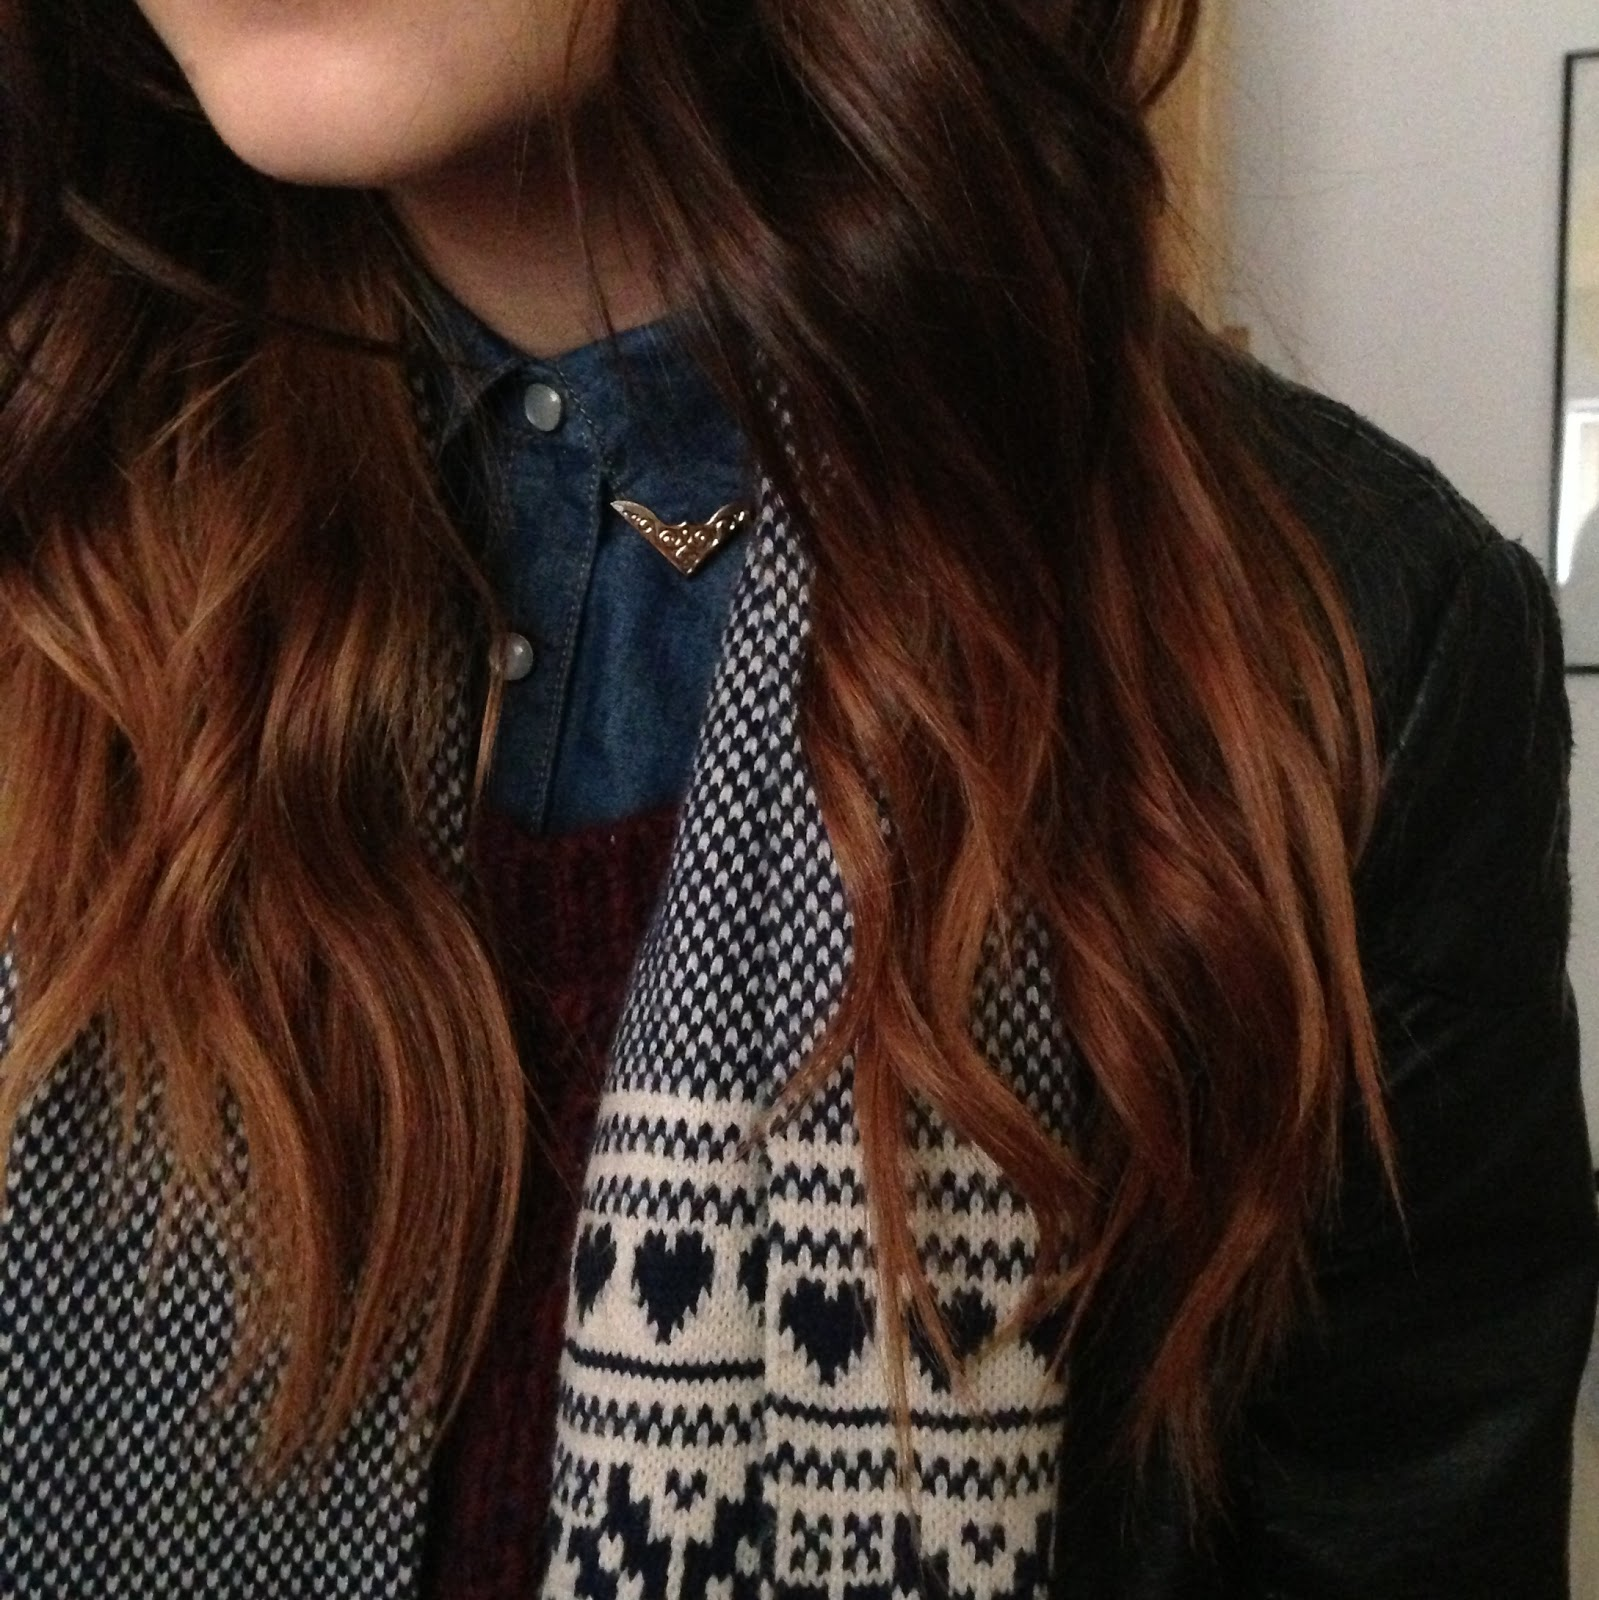 L Oreal Wild Ombres Preference Dip Dye Inthefrow